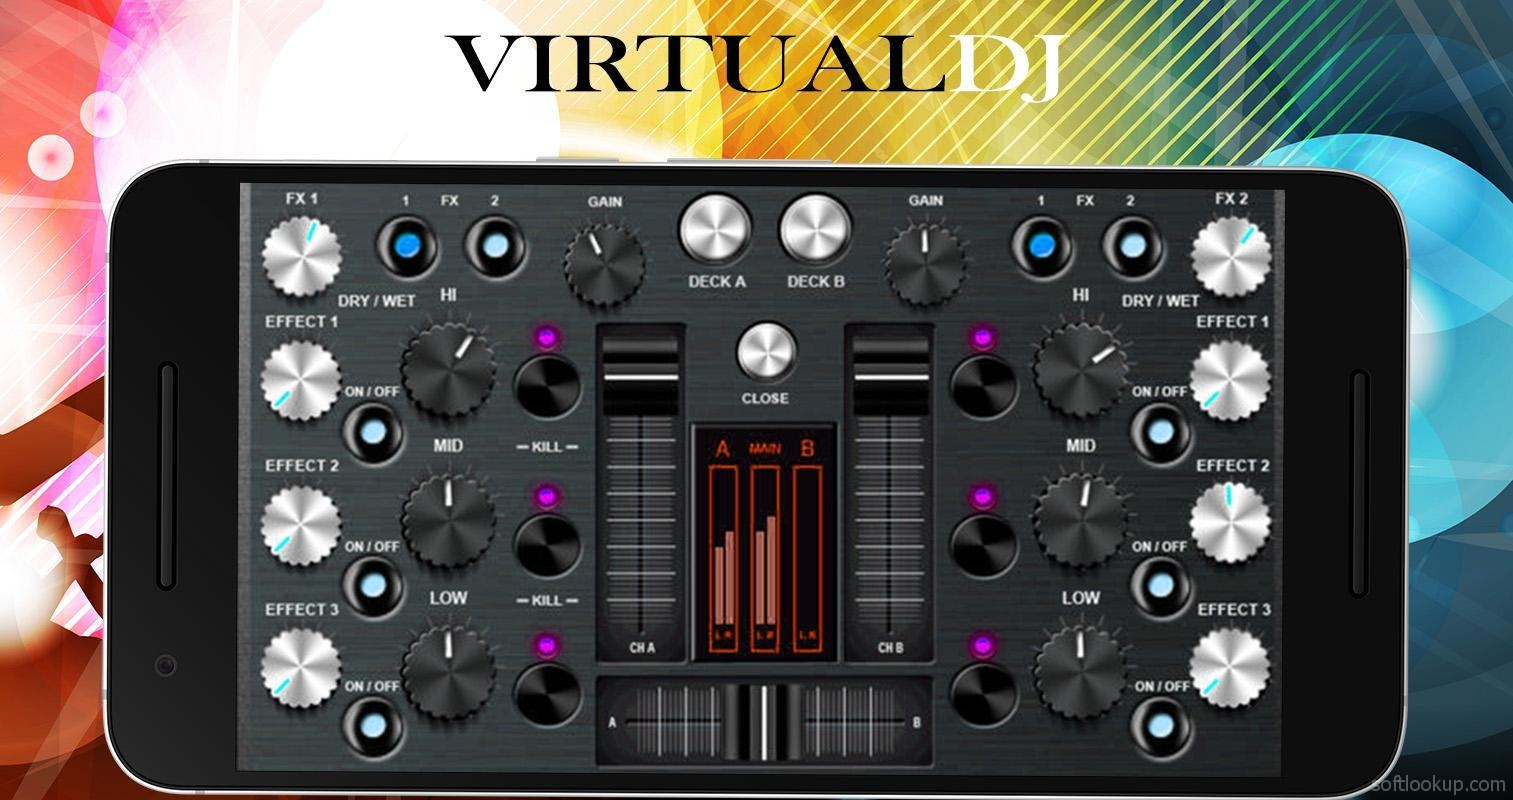 Virtual DJ Mixer 8ًںژ› Djing Song Mixer and Controller ScreenShot2